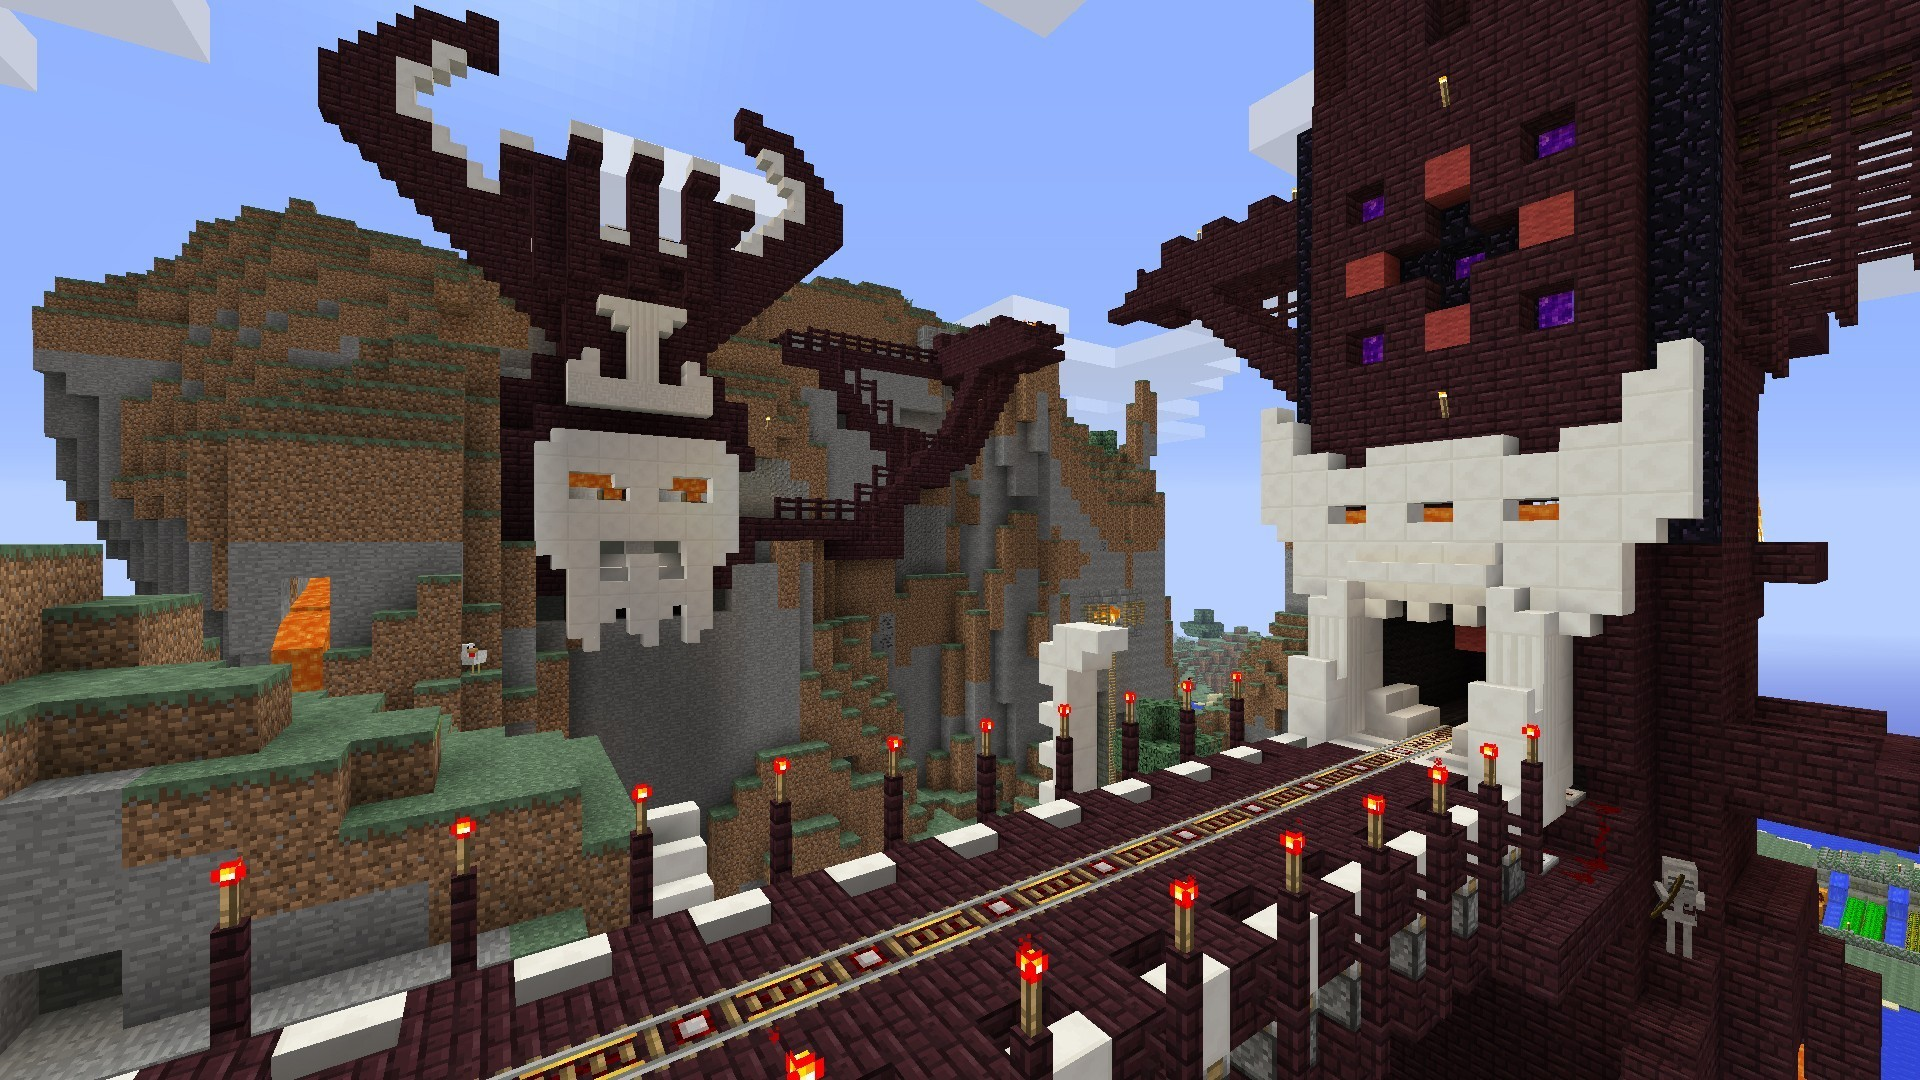 Leaked Minecraft Credentials Are Not the Result of an Attack